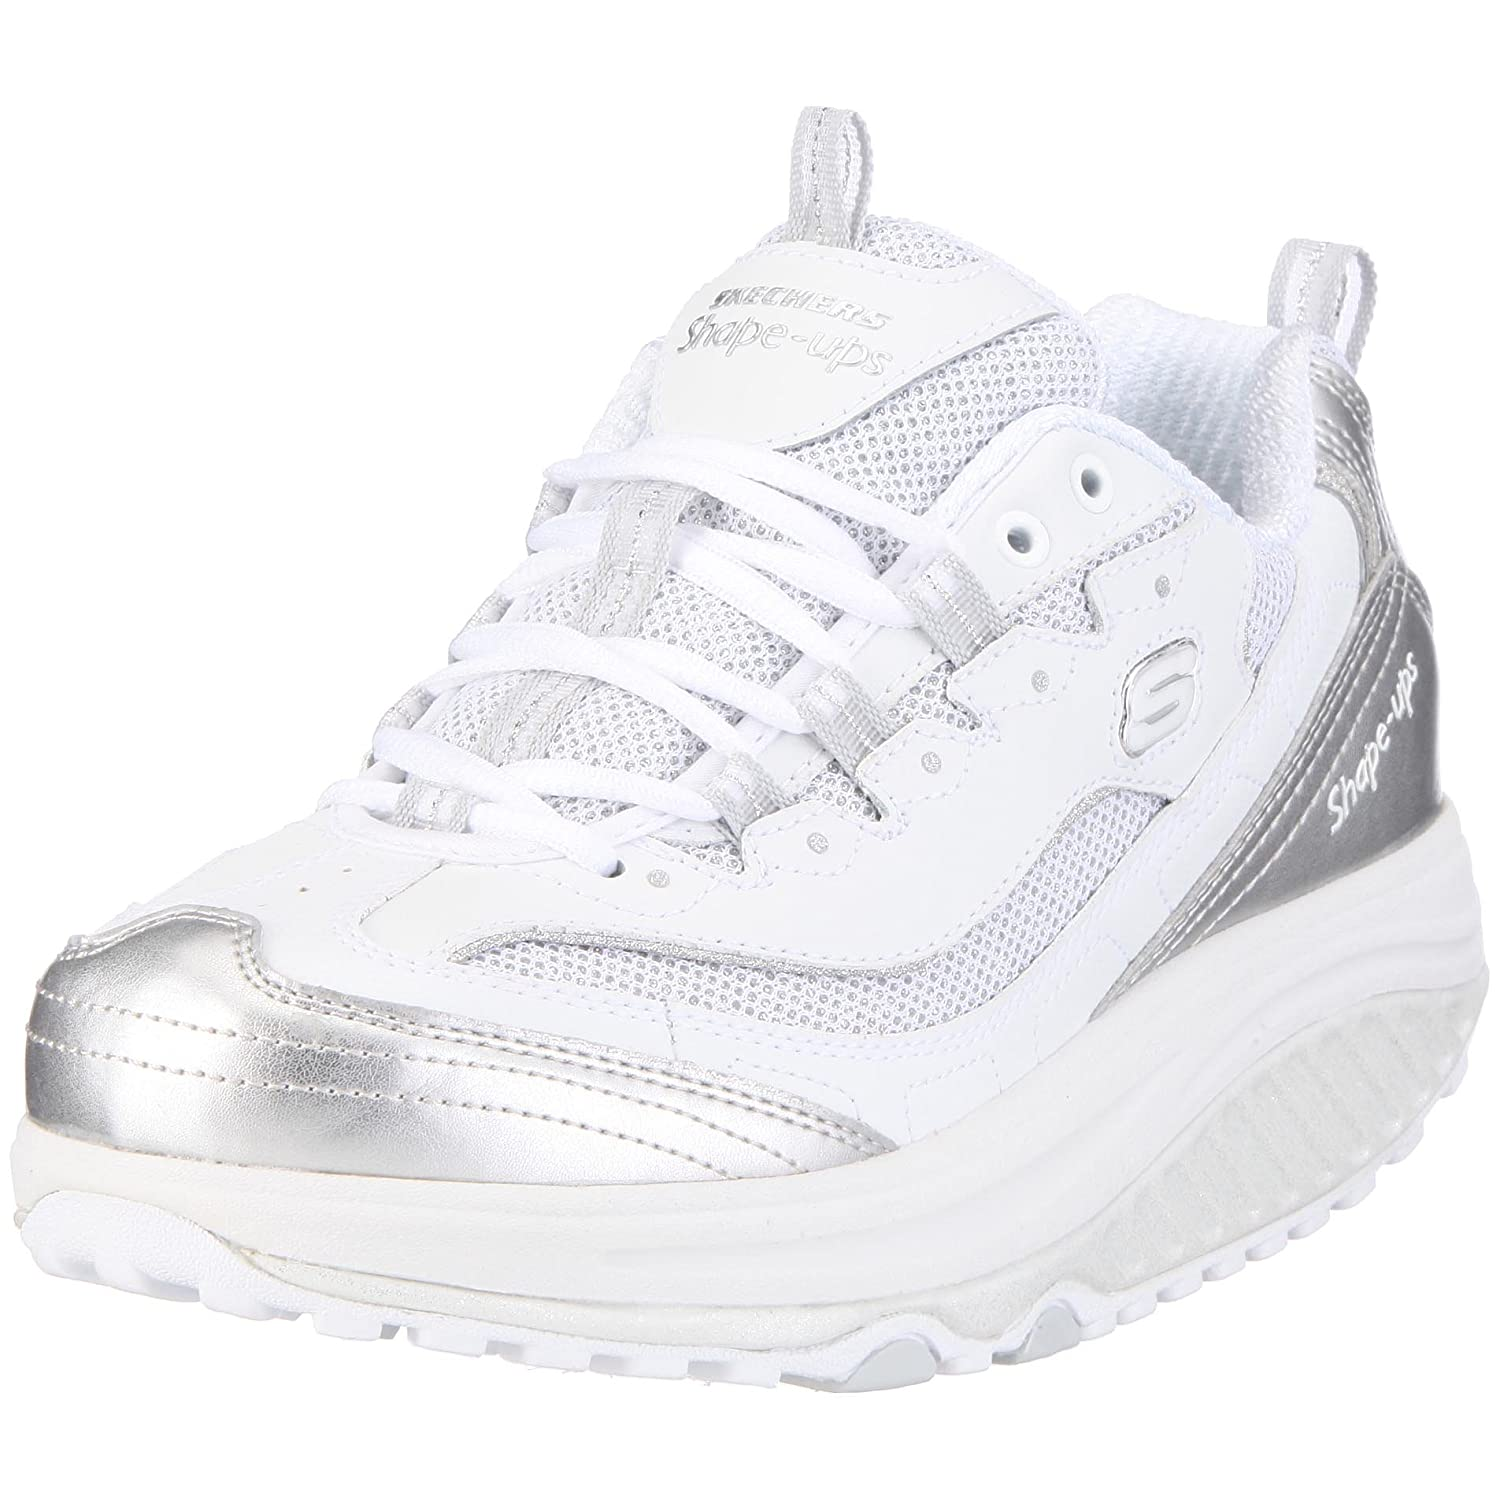 Skechers Women's Shape Ups Rockin Out Fashion Sneaker